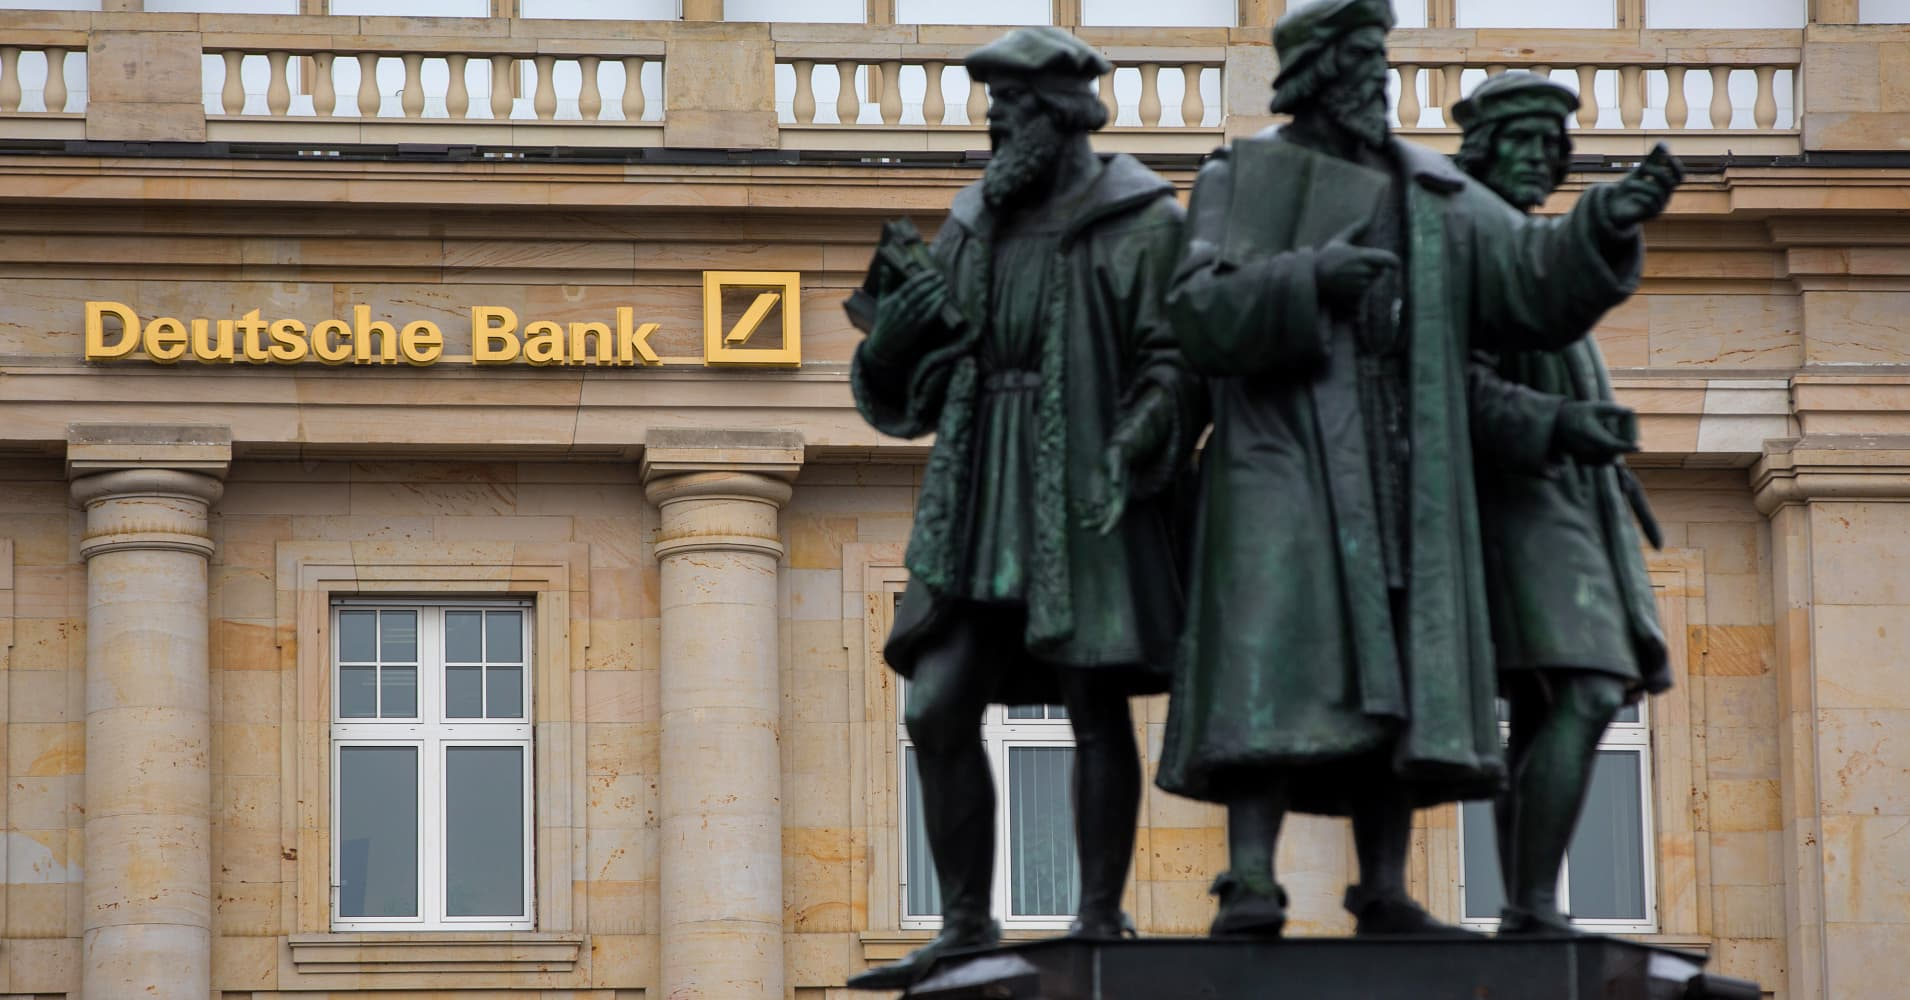 Deutsche Bank, Commerzbank shares surge as merger talks begin